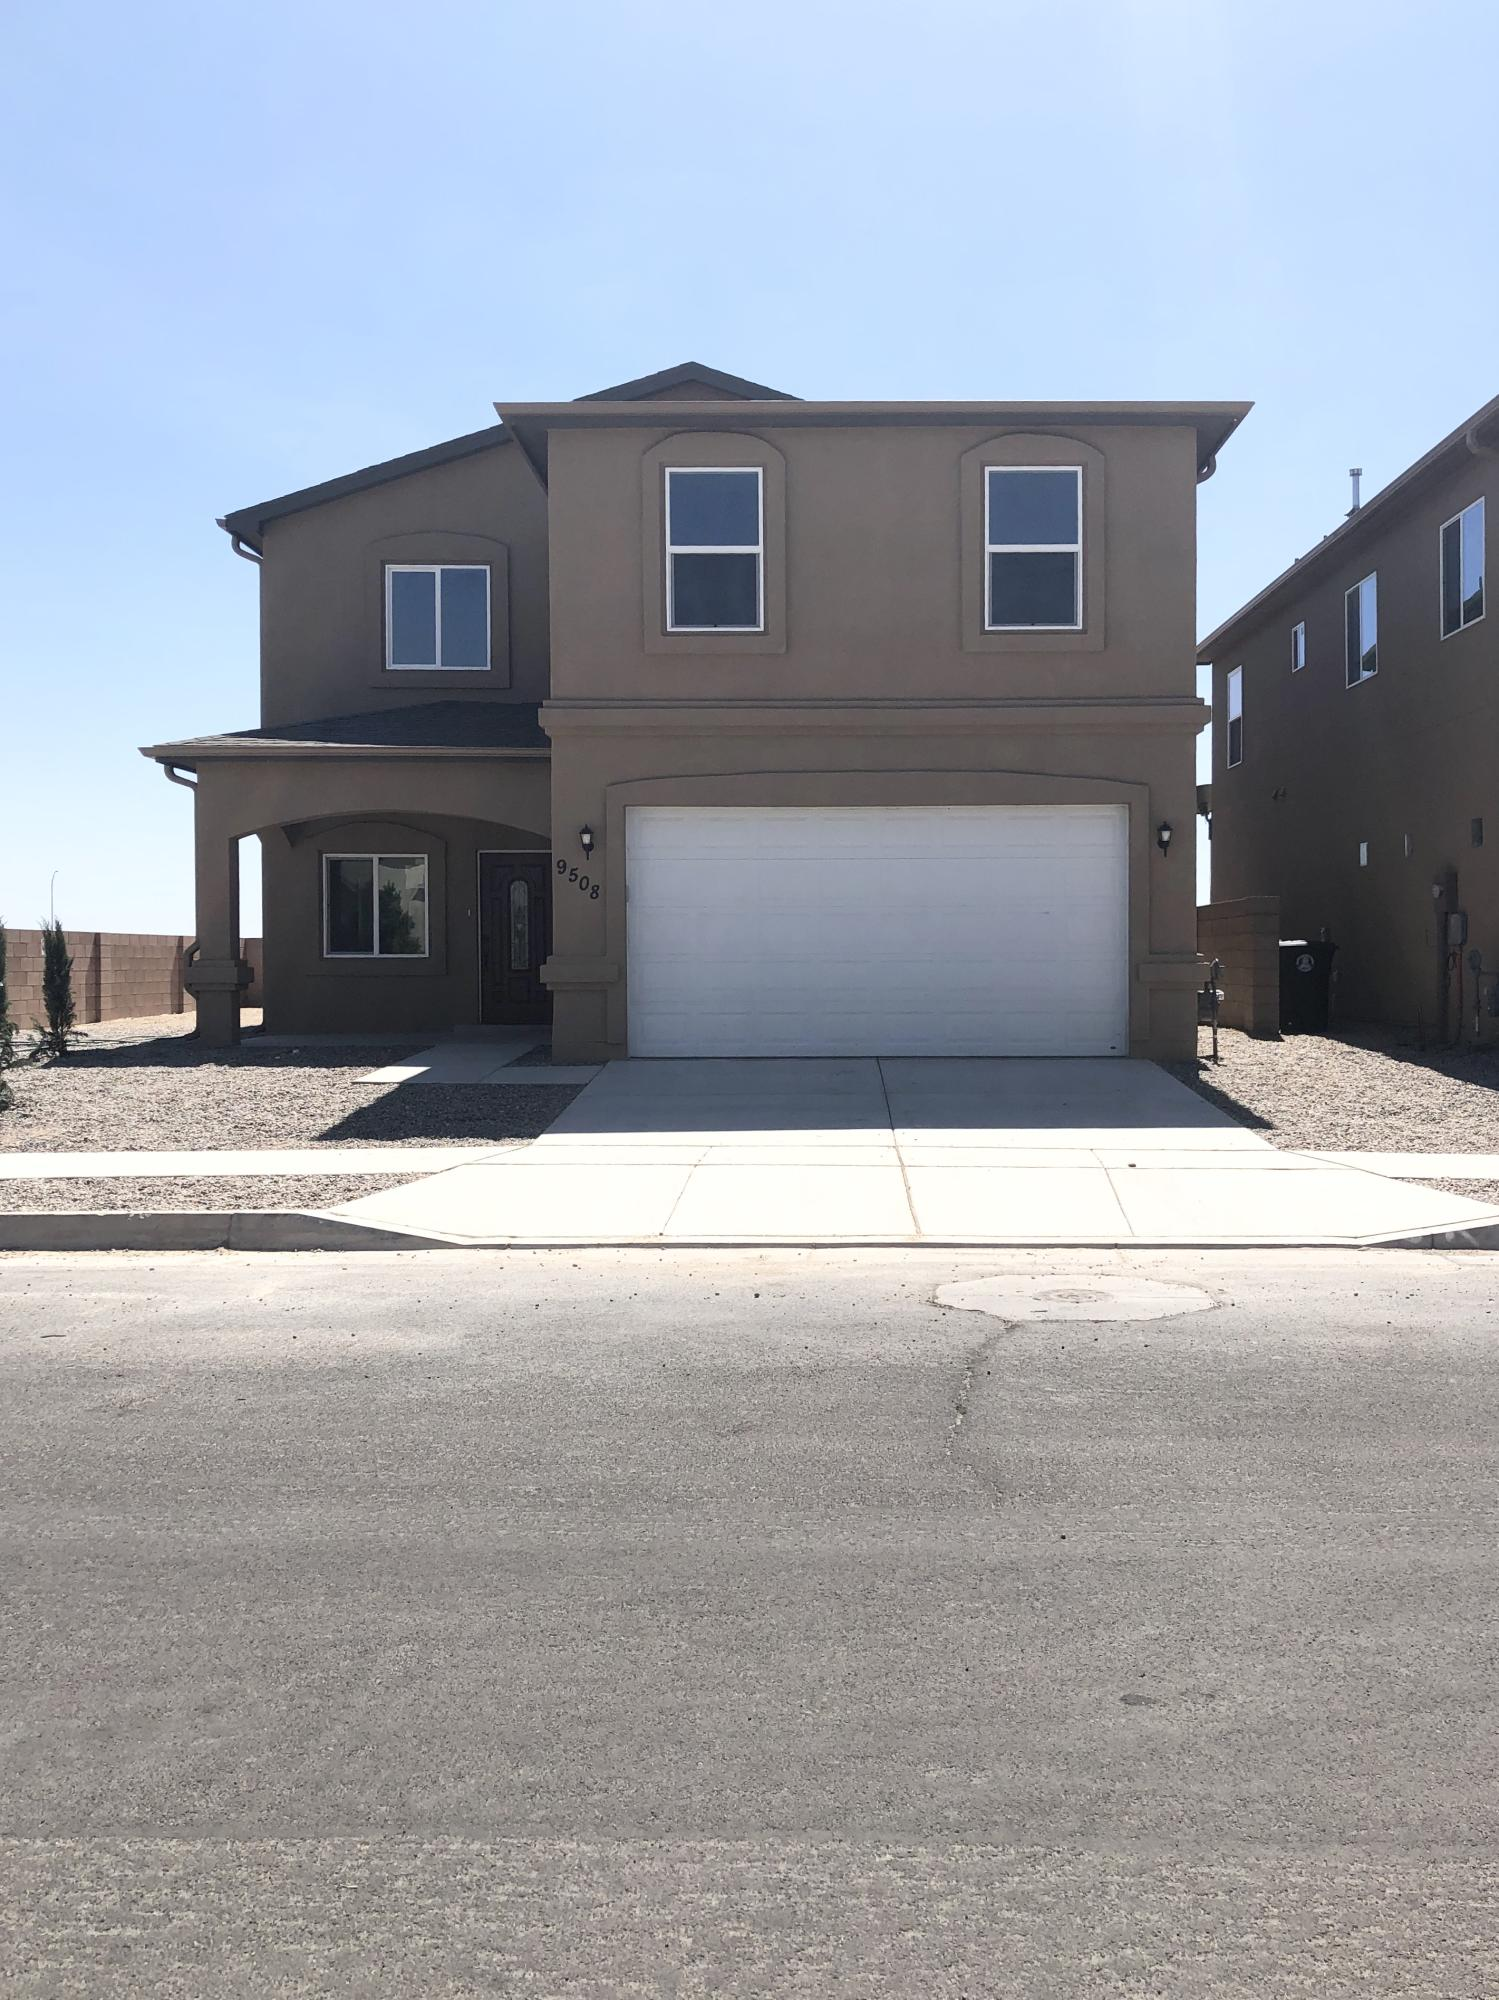 NEW CONSTRUCTION! Beautifull 2 story home established on a popular neighborhood. Bright and open floor plan, stainless steel appliances, custom tile, granite counter tops.